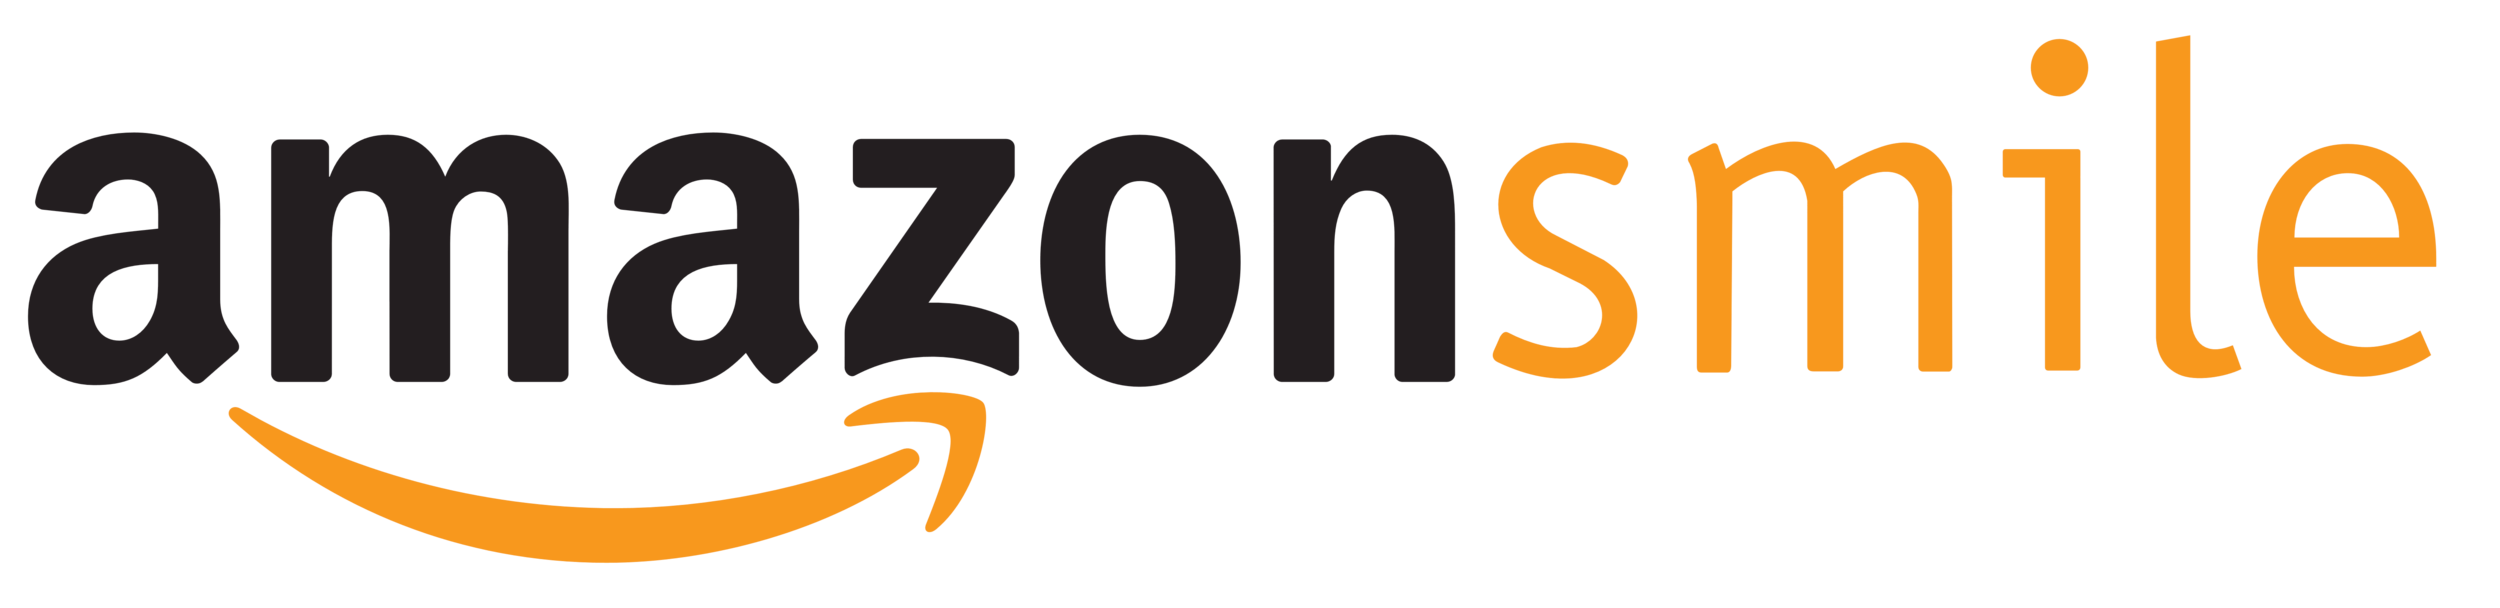 Amazon Smile Purchases - You shop.Amazon gives.Amazon donates 0.5% of the price of your eligible AmazonSmile purchases to CASA of Central Virginia.AmazonSmile is the same Amazon you know. Same products, same prices, same service.Support CASA by starting your shopping at smile.amazon.com